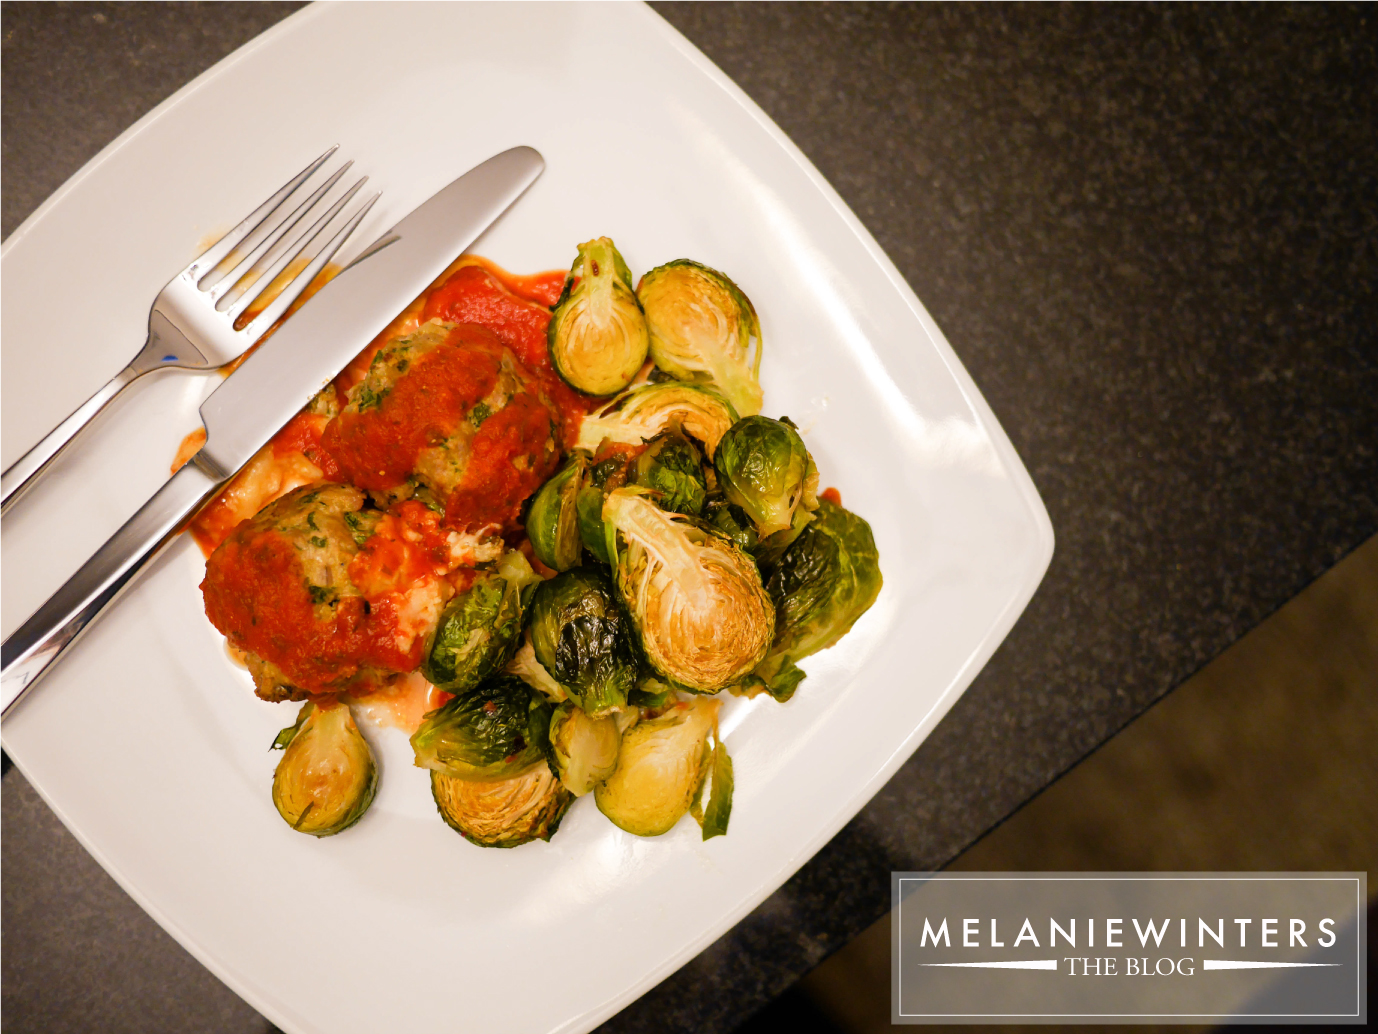 Stuffed Meatballs and Brussels Sprouts